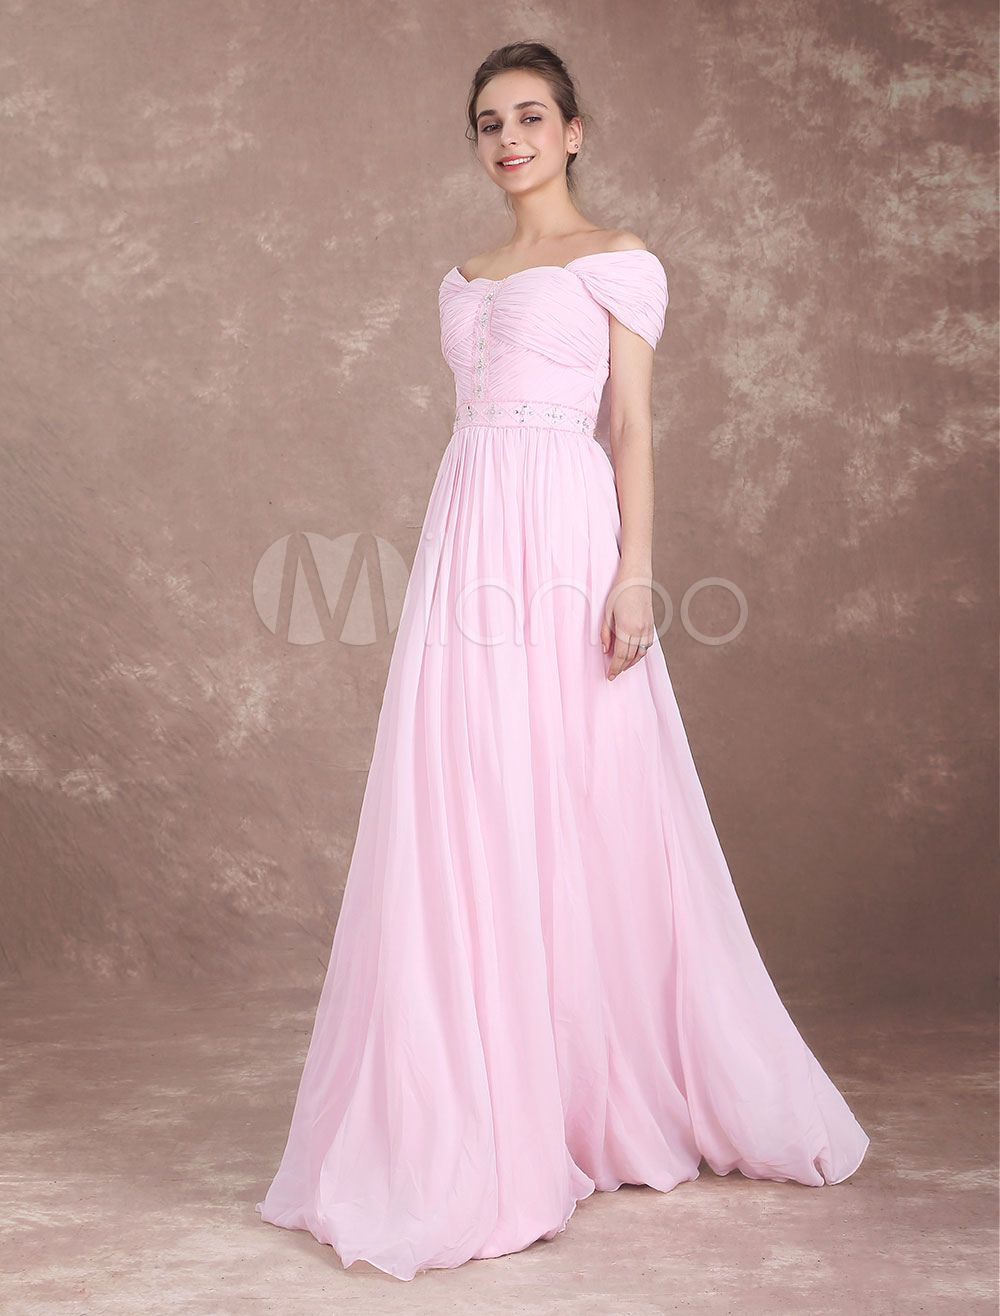 b395d0cf0293 Bridesmaid Dress Soft Pink Chiffon Long Prom Dresses Off The Shoulder  Beaded Pleated Floor Length Wedding Party Dresses